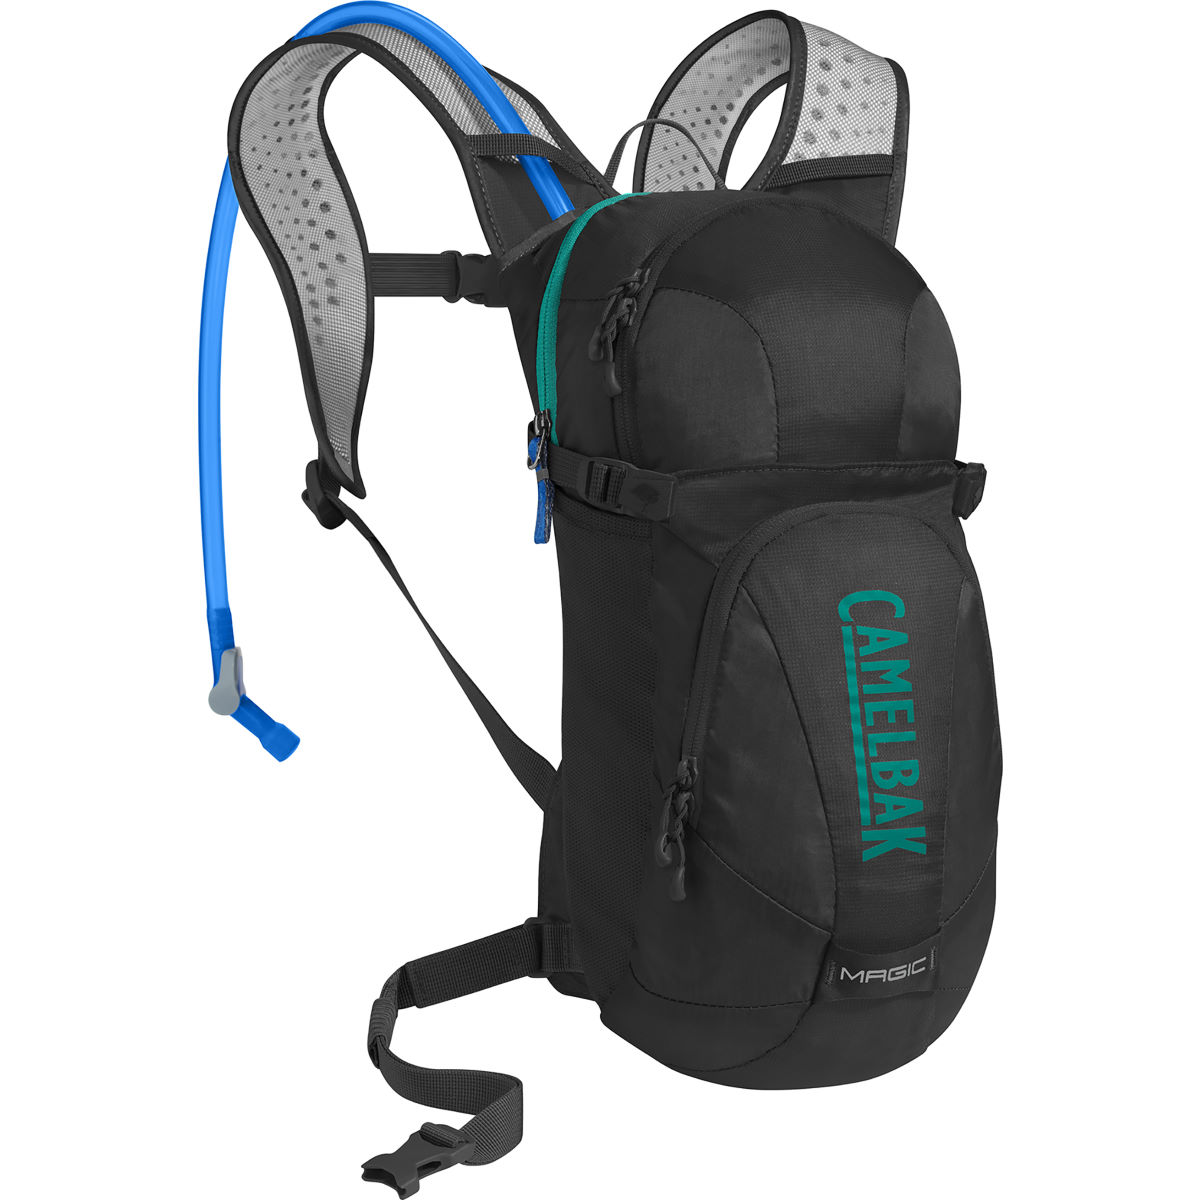 Sac d'hydratation Femme Camelbak MAGIC - One Size Black/Columbia Jade Sacs d'hydratation